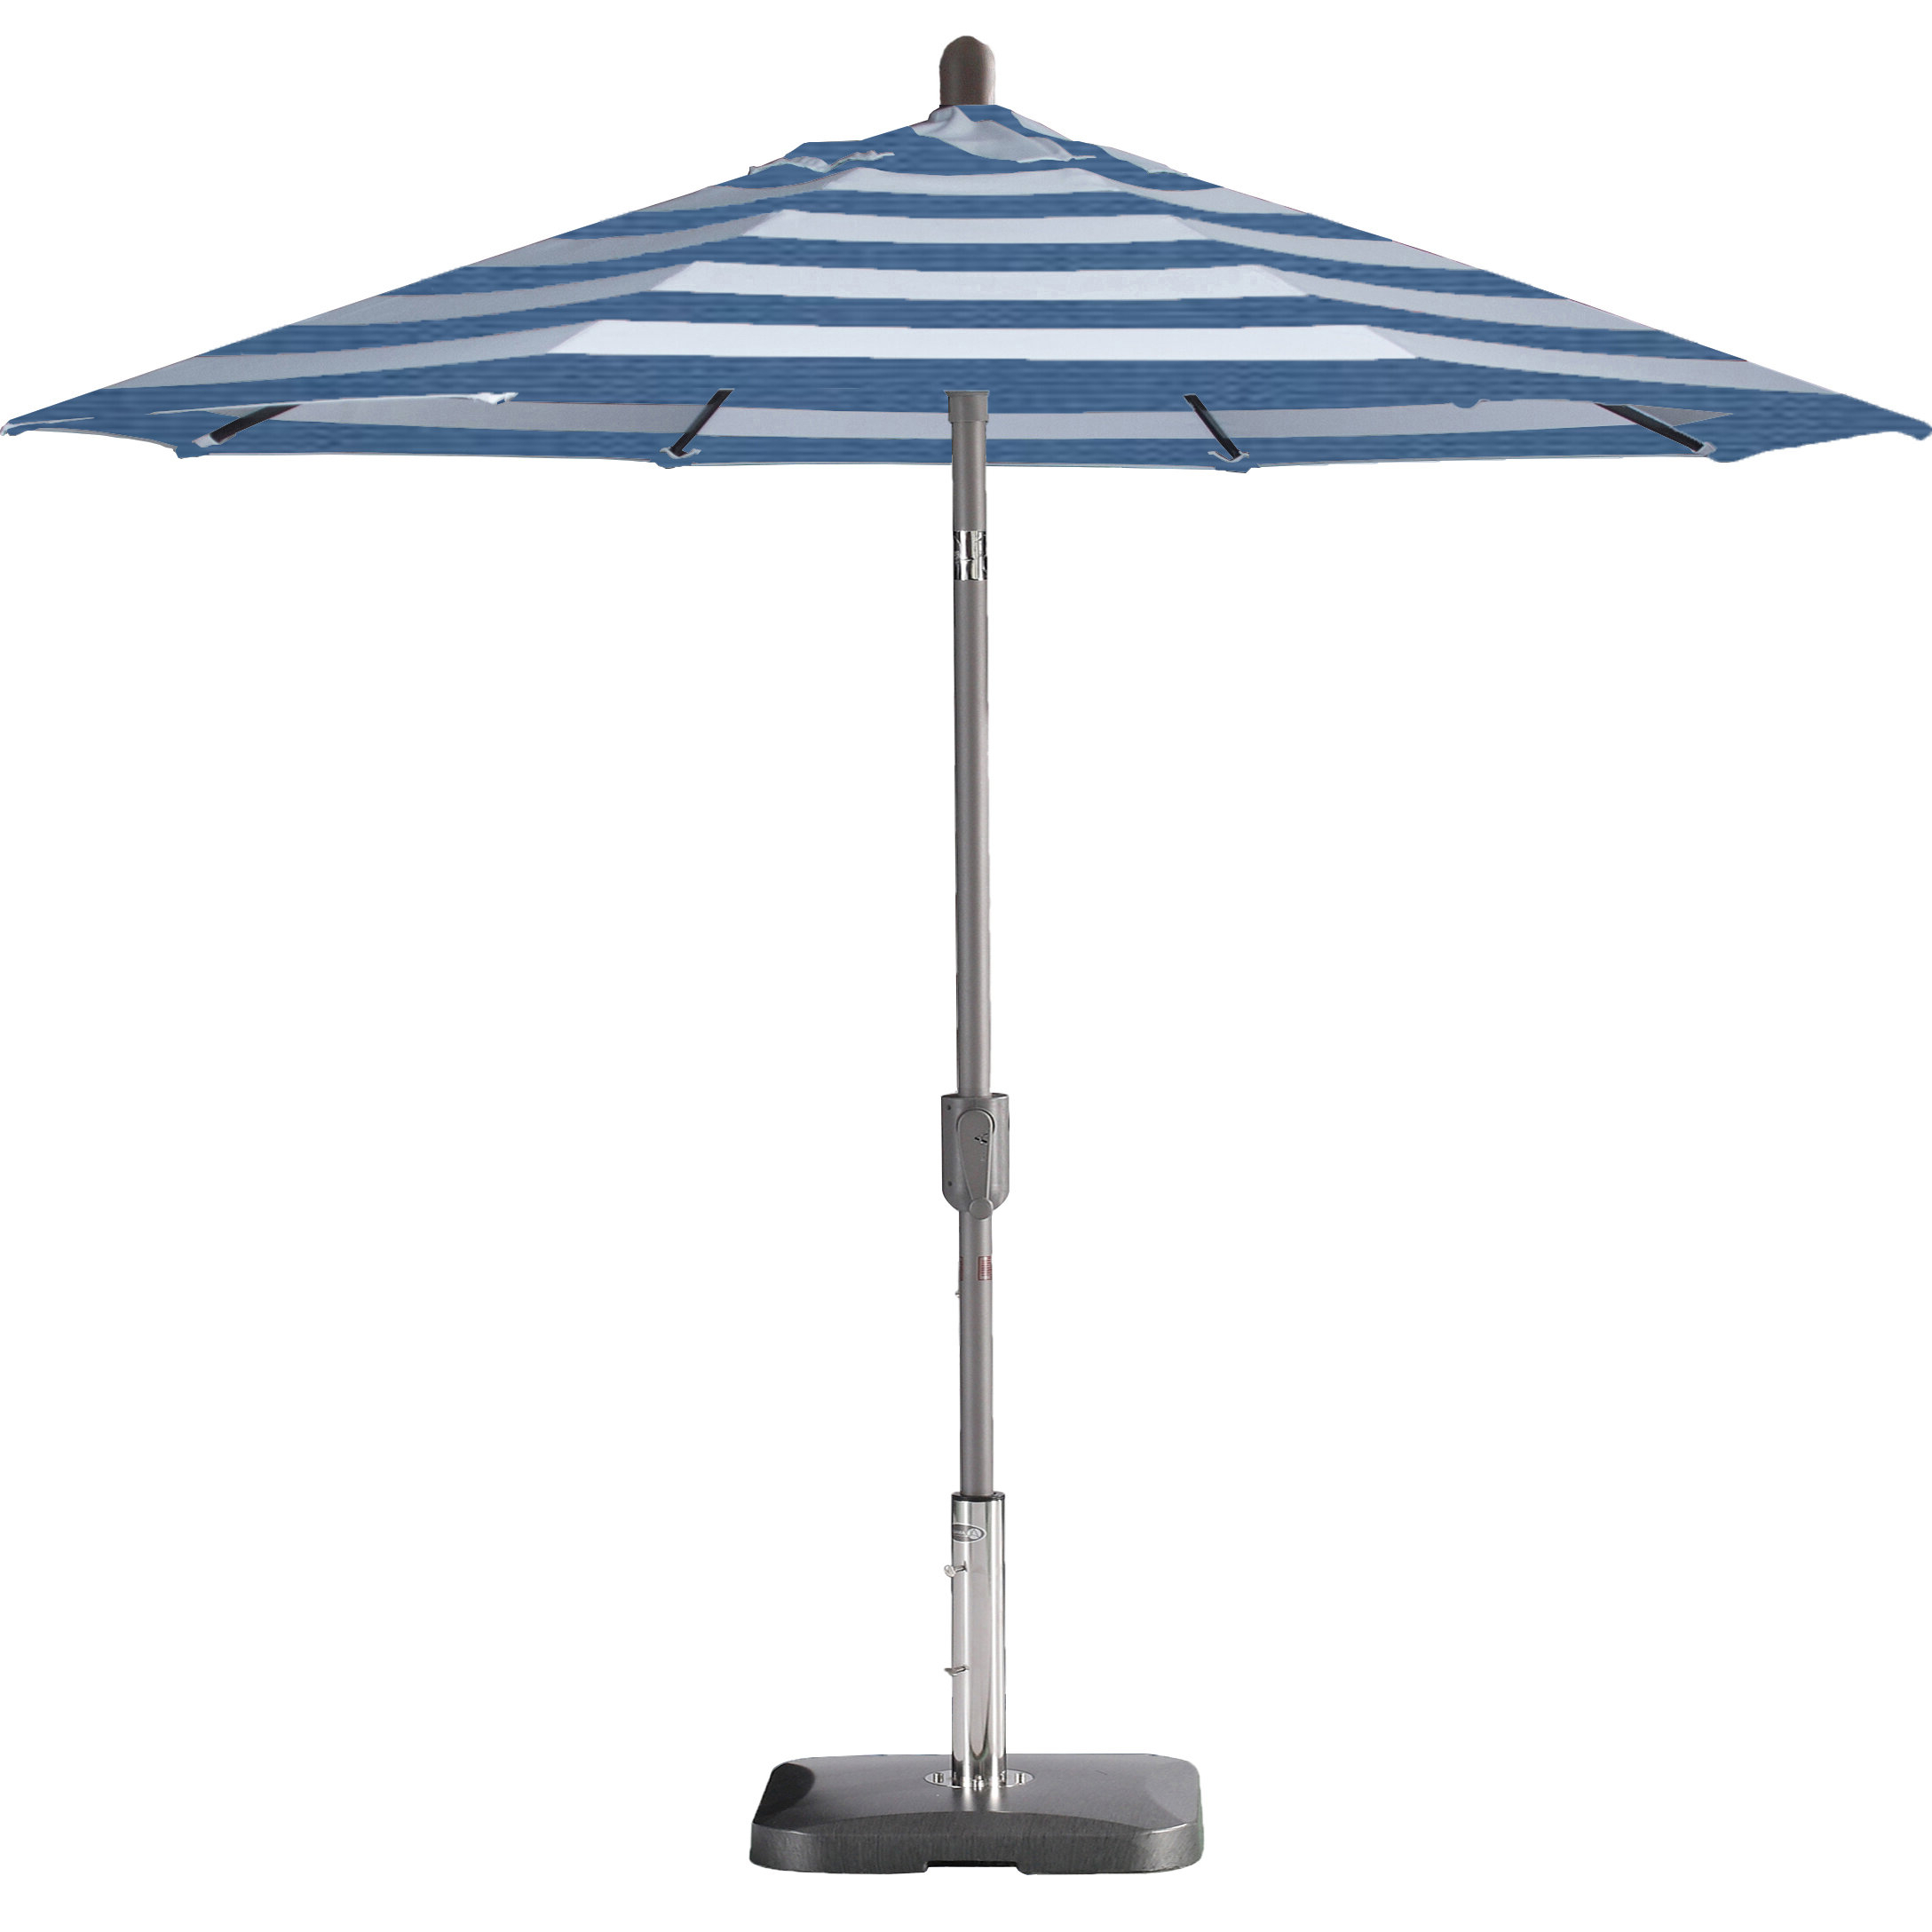 Wiechmann Push Tilt 9' Market Sunbrella Umbrella With Regard To Most Popular Wiebe Auto Tilt Square Market Sunbrella Umbrellas (View 19 of 20)